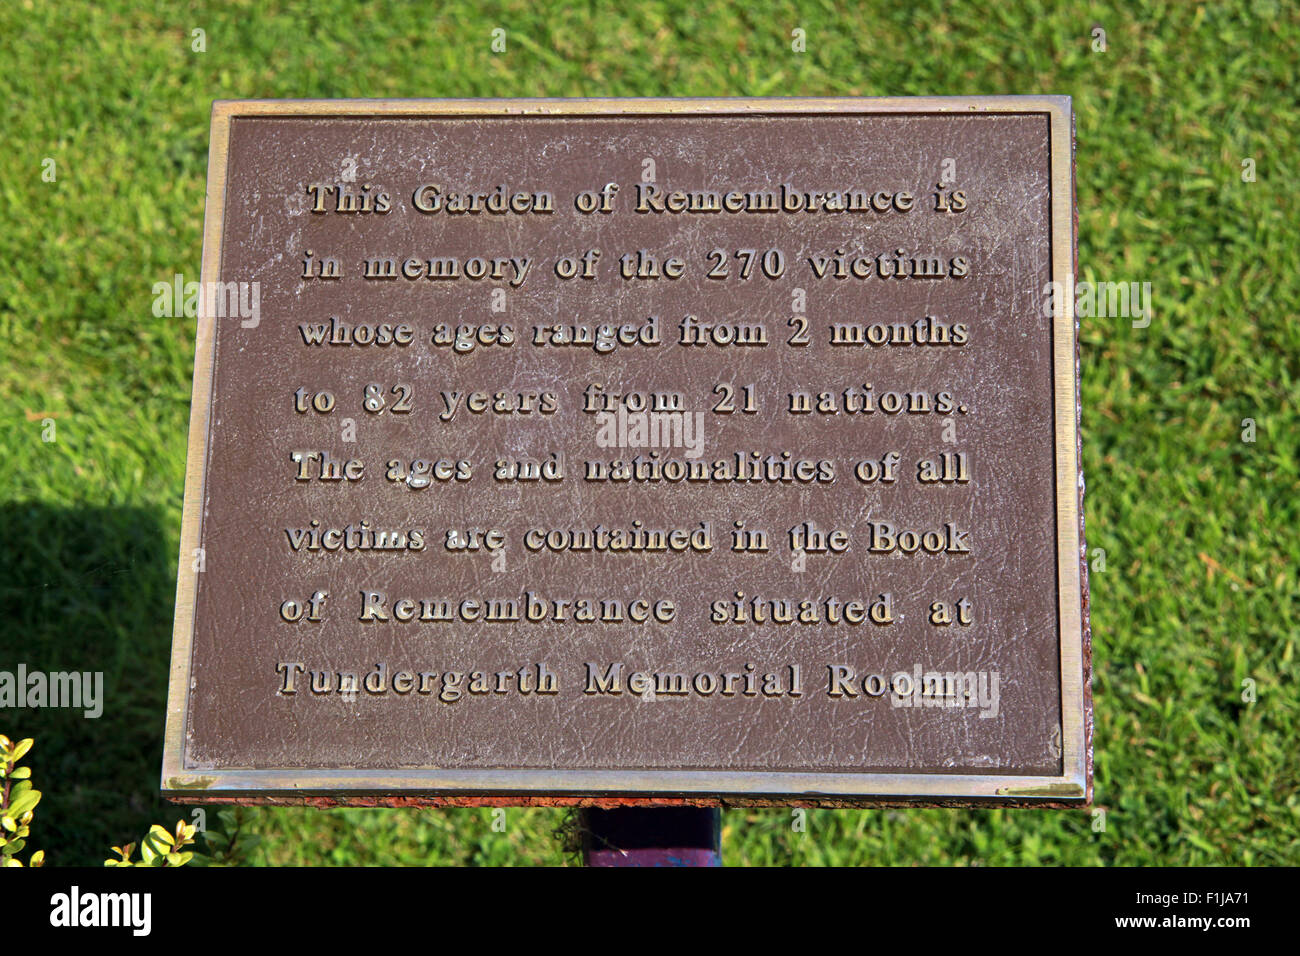 Plaque Lockerbie PanAm103 Memorial,Scotland - Stock Image